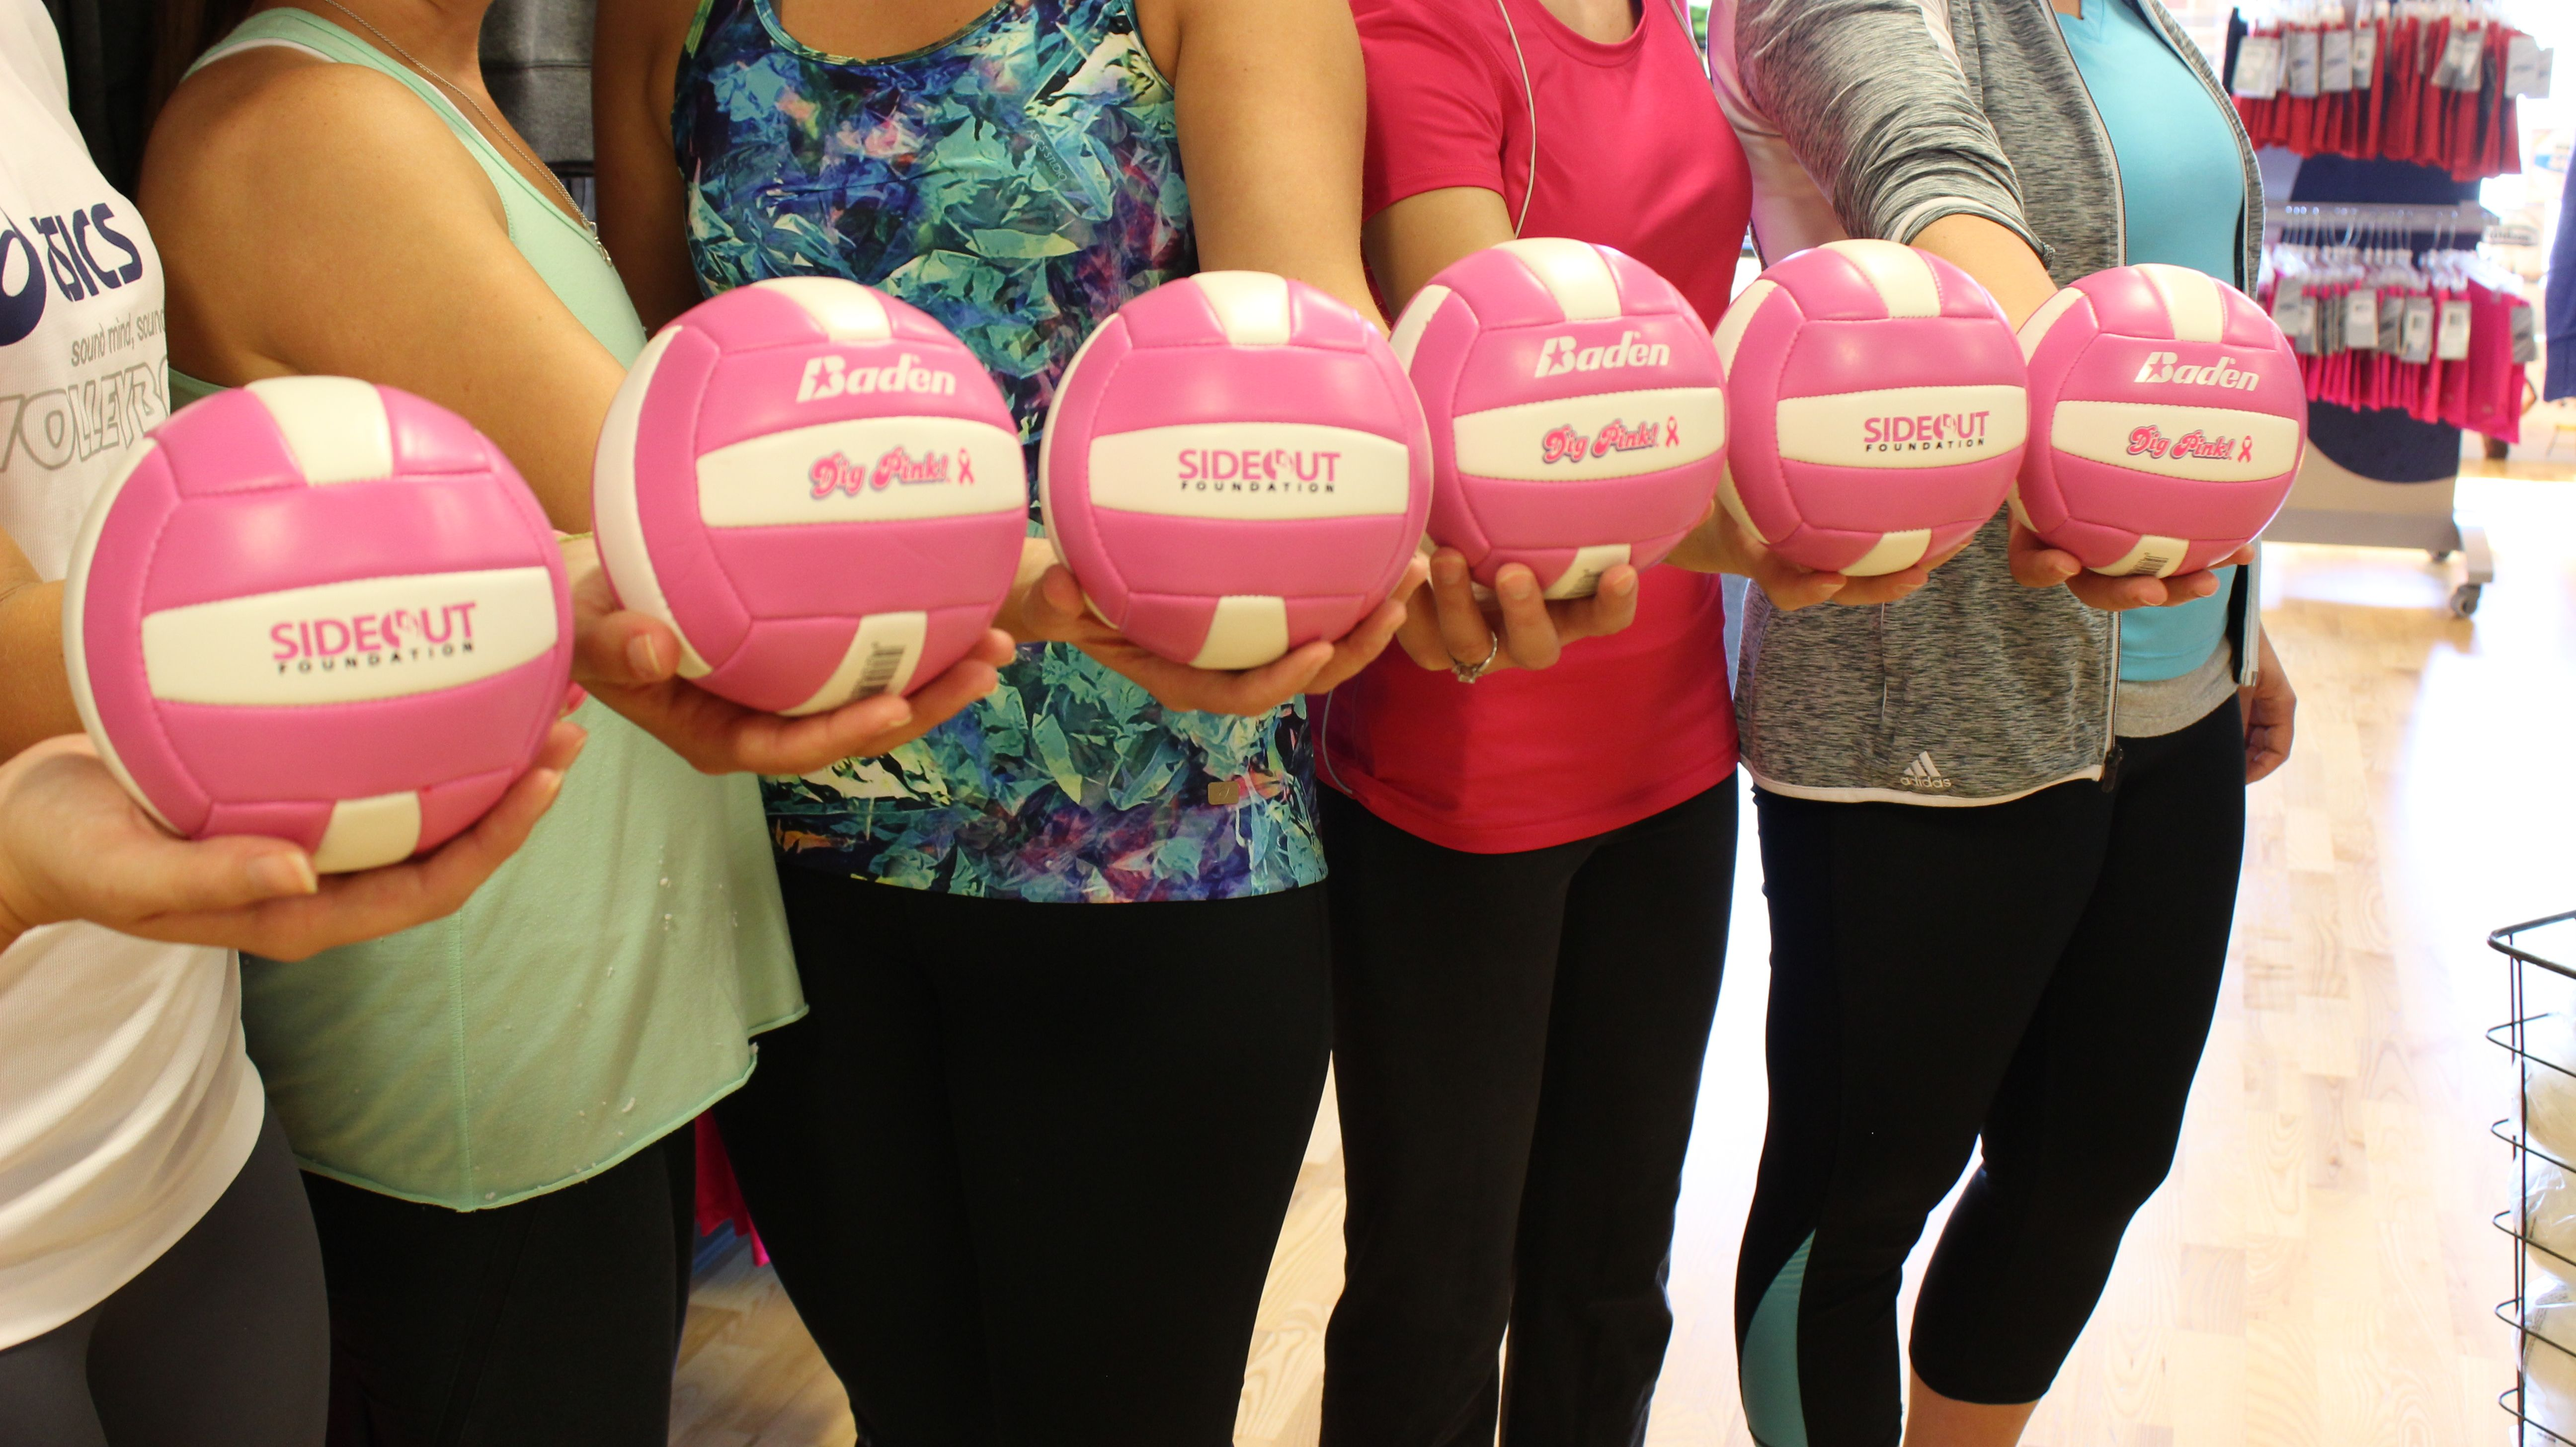 Pin By Madison Kruse On Volleyball Pink Pride Dig Pink Volleyball Outfits